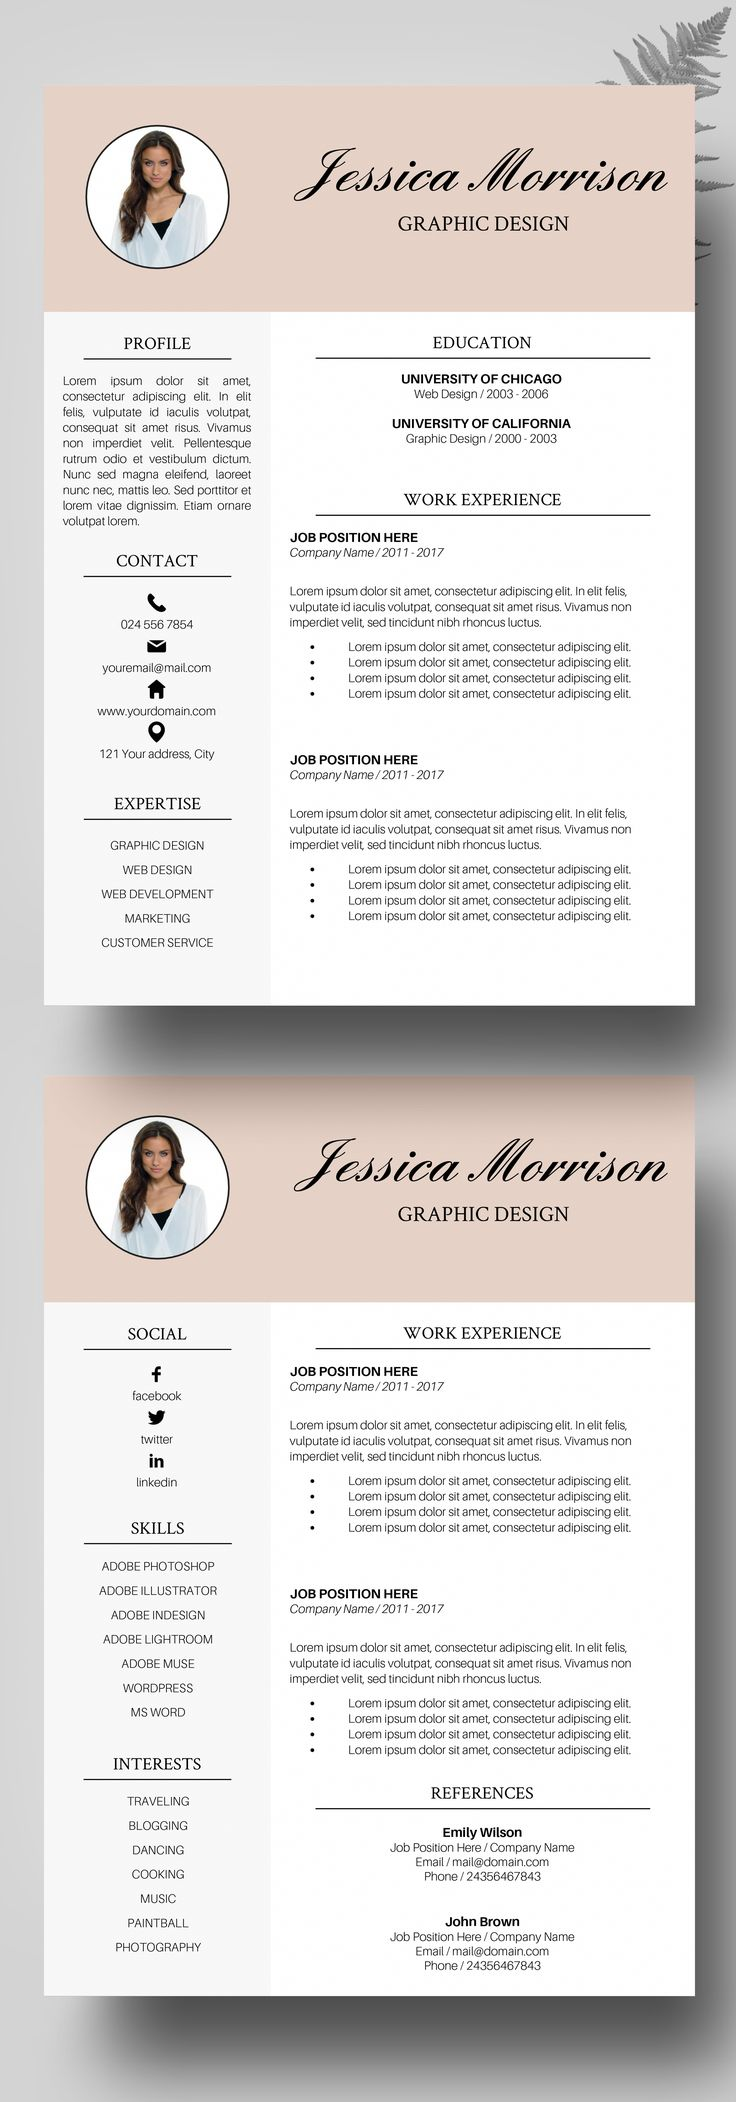 Buy Resume Templates Fair 46 Best Resume Templates 50% Off Special Offer Images On Pinterest